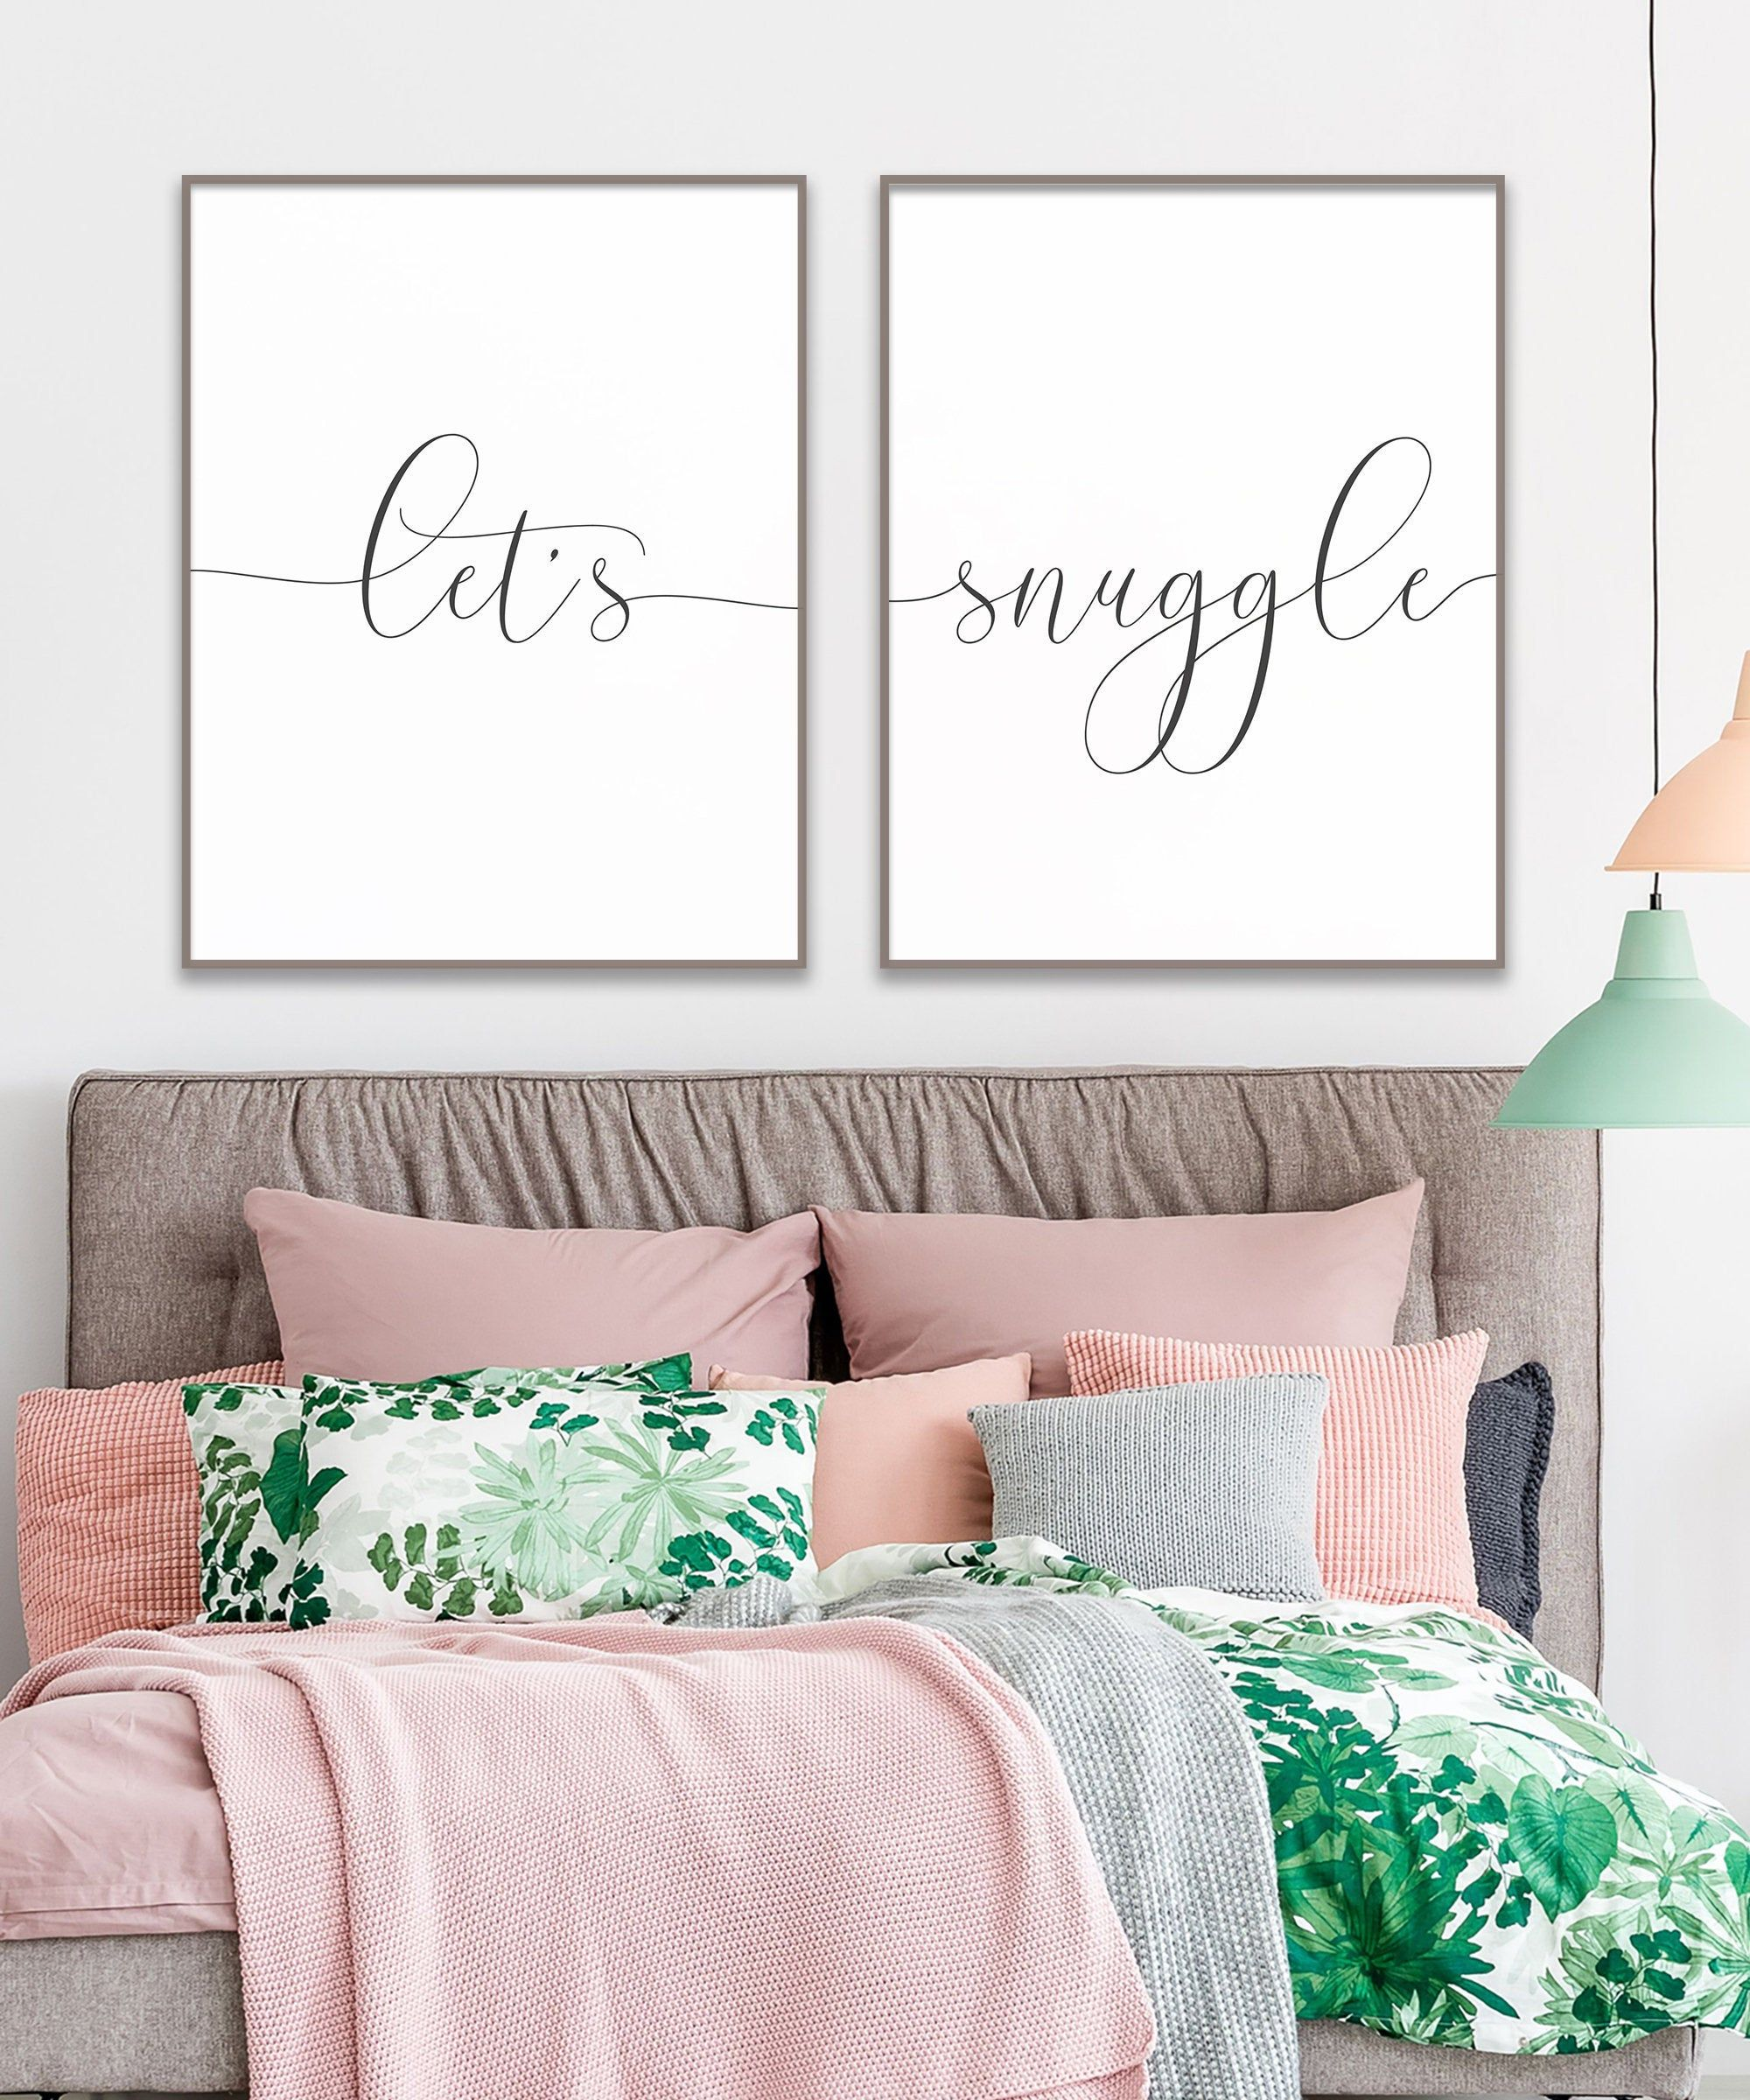 SNUGGLE UP Wall PrintBedroom Wall Art Home Decor Idea Ideas Quote Poster